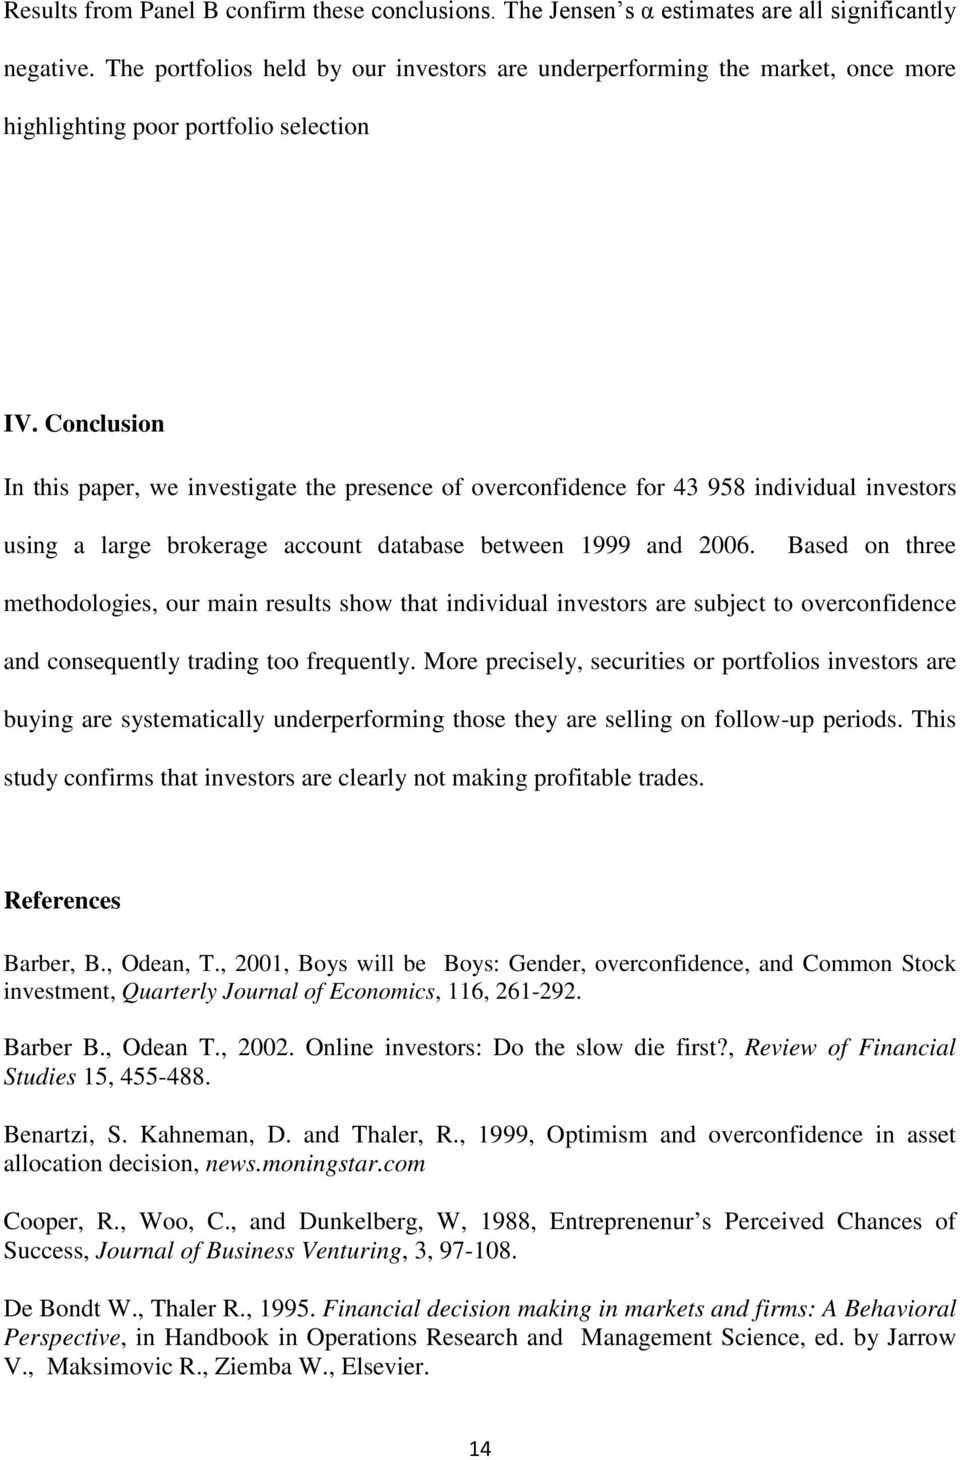 Conclusion In this paper, we investigate the presence of overconfidence for 43 958 individual investors using a large brokerage account database between 1999 and 2006.